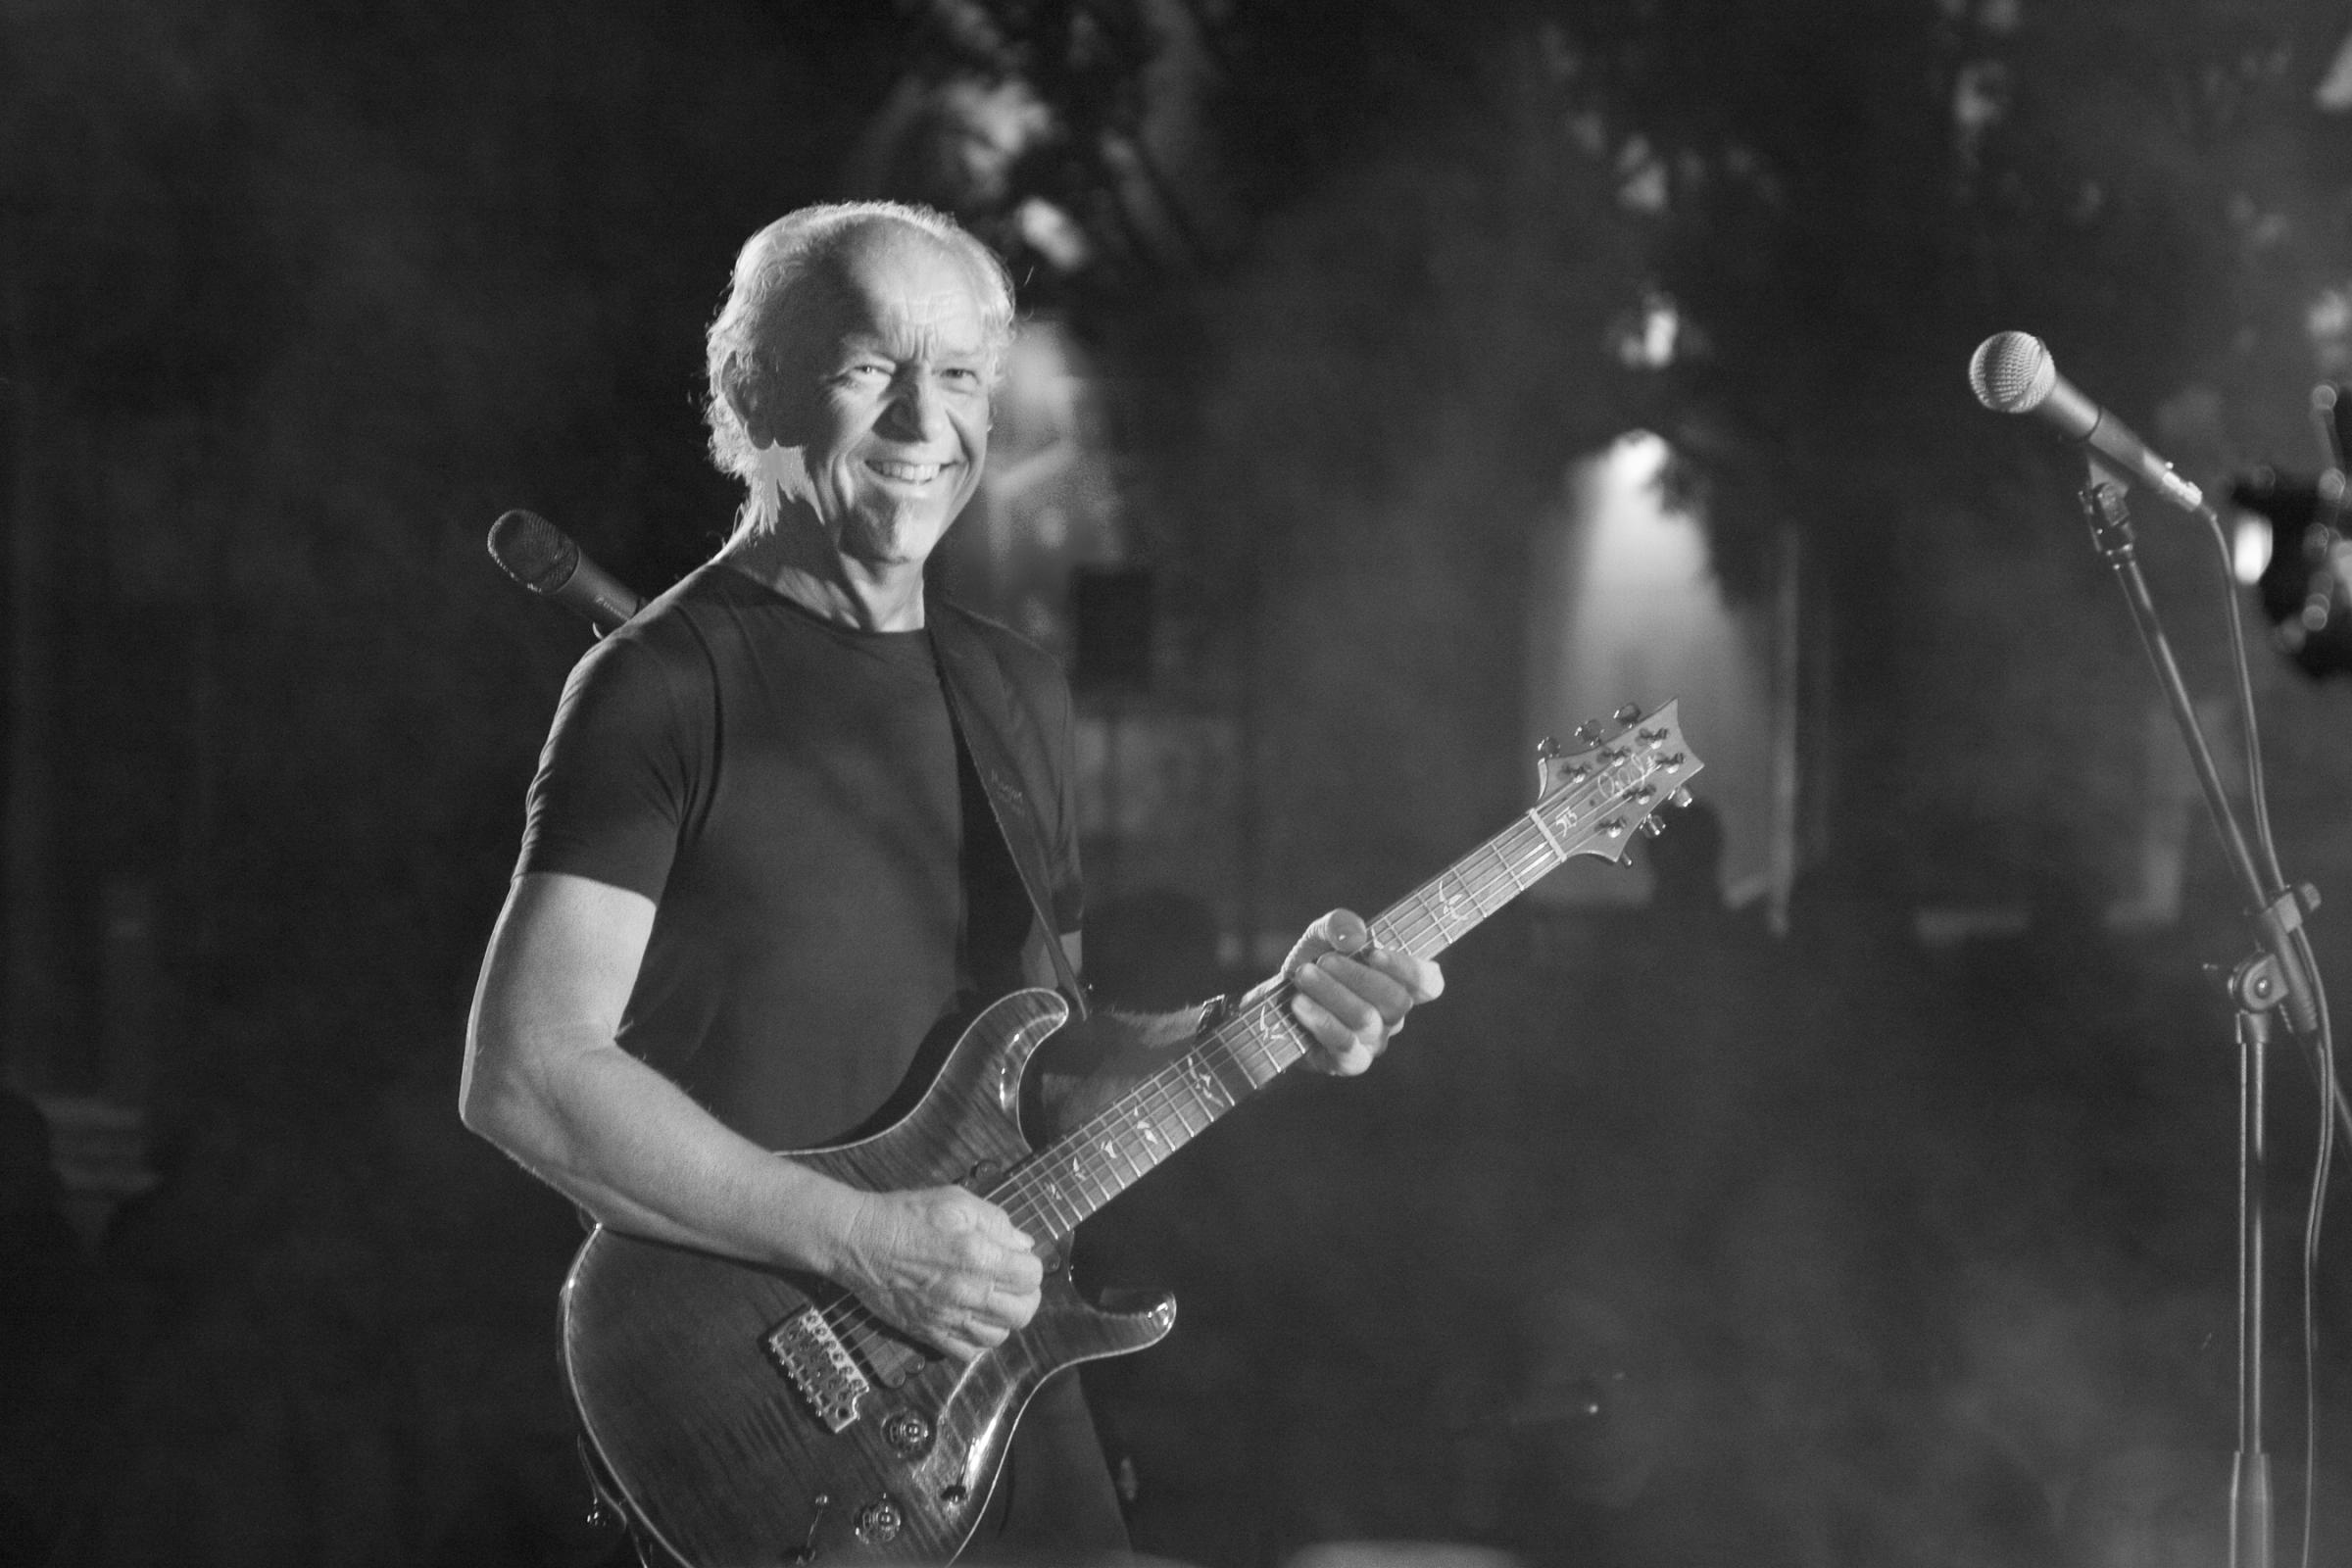 ROCKER: Martin Barre of Jethro Tull and The Martin Barre Ban